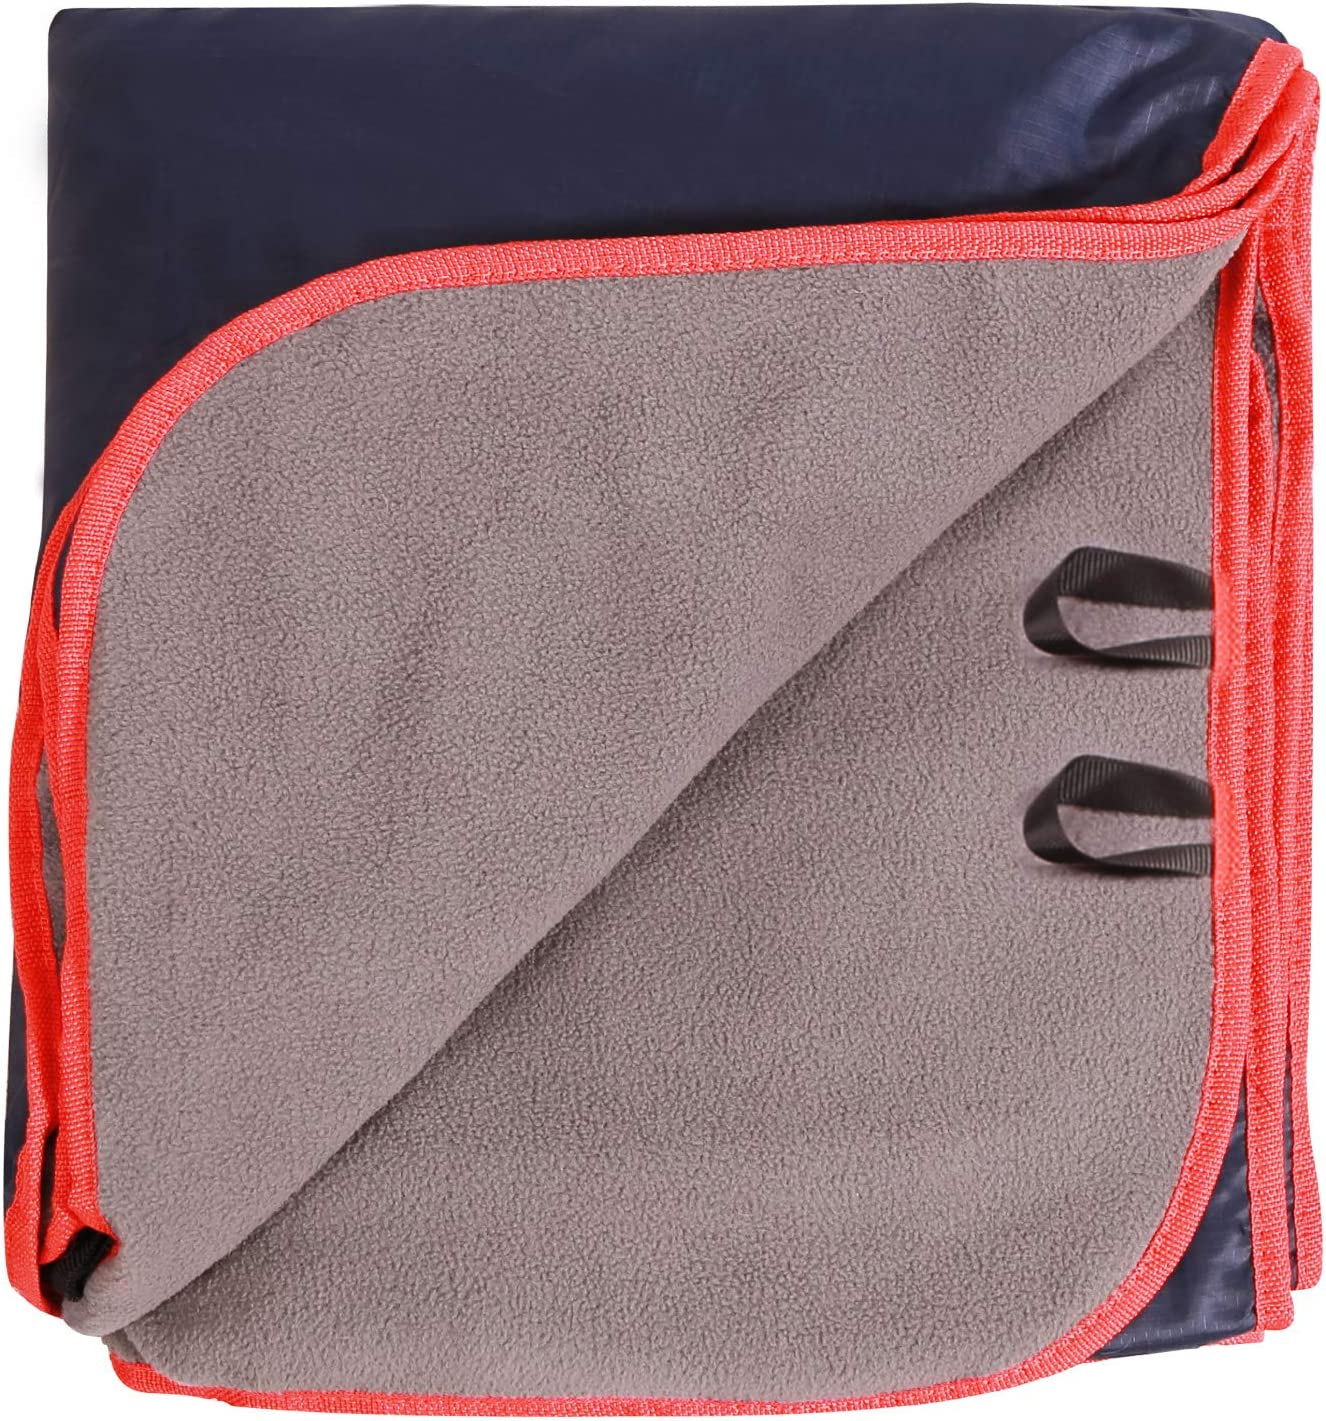 REDCAMP Large Waterproof Stadium Blanket for Cold Weather, Soft Warm Fleece Camping Blanket Windproof for Outdoor Sports, Blue: Kitchen & Dining